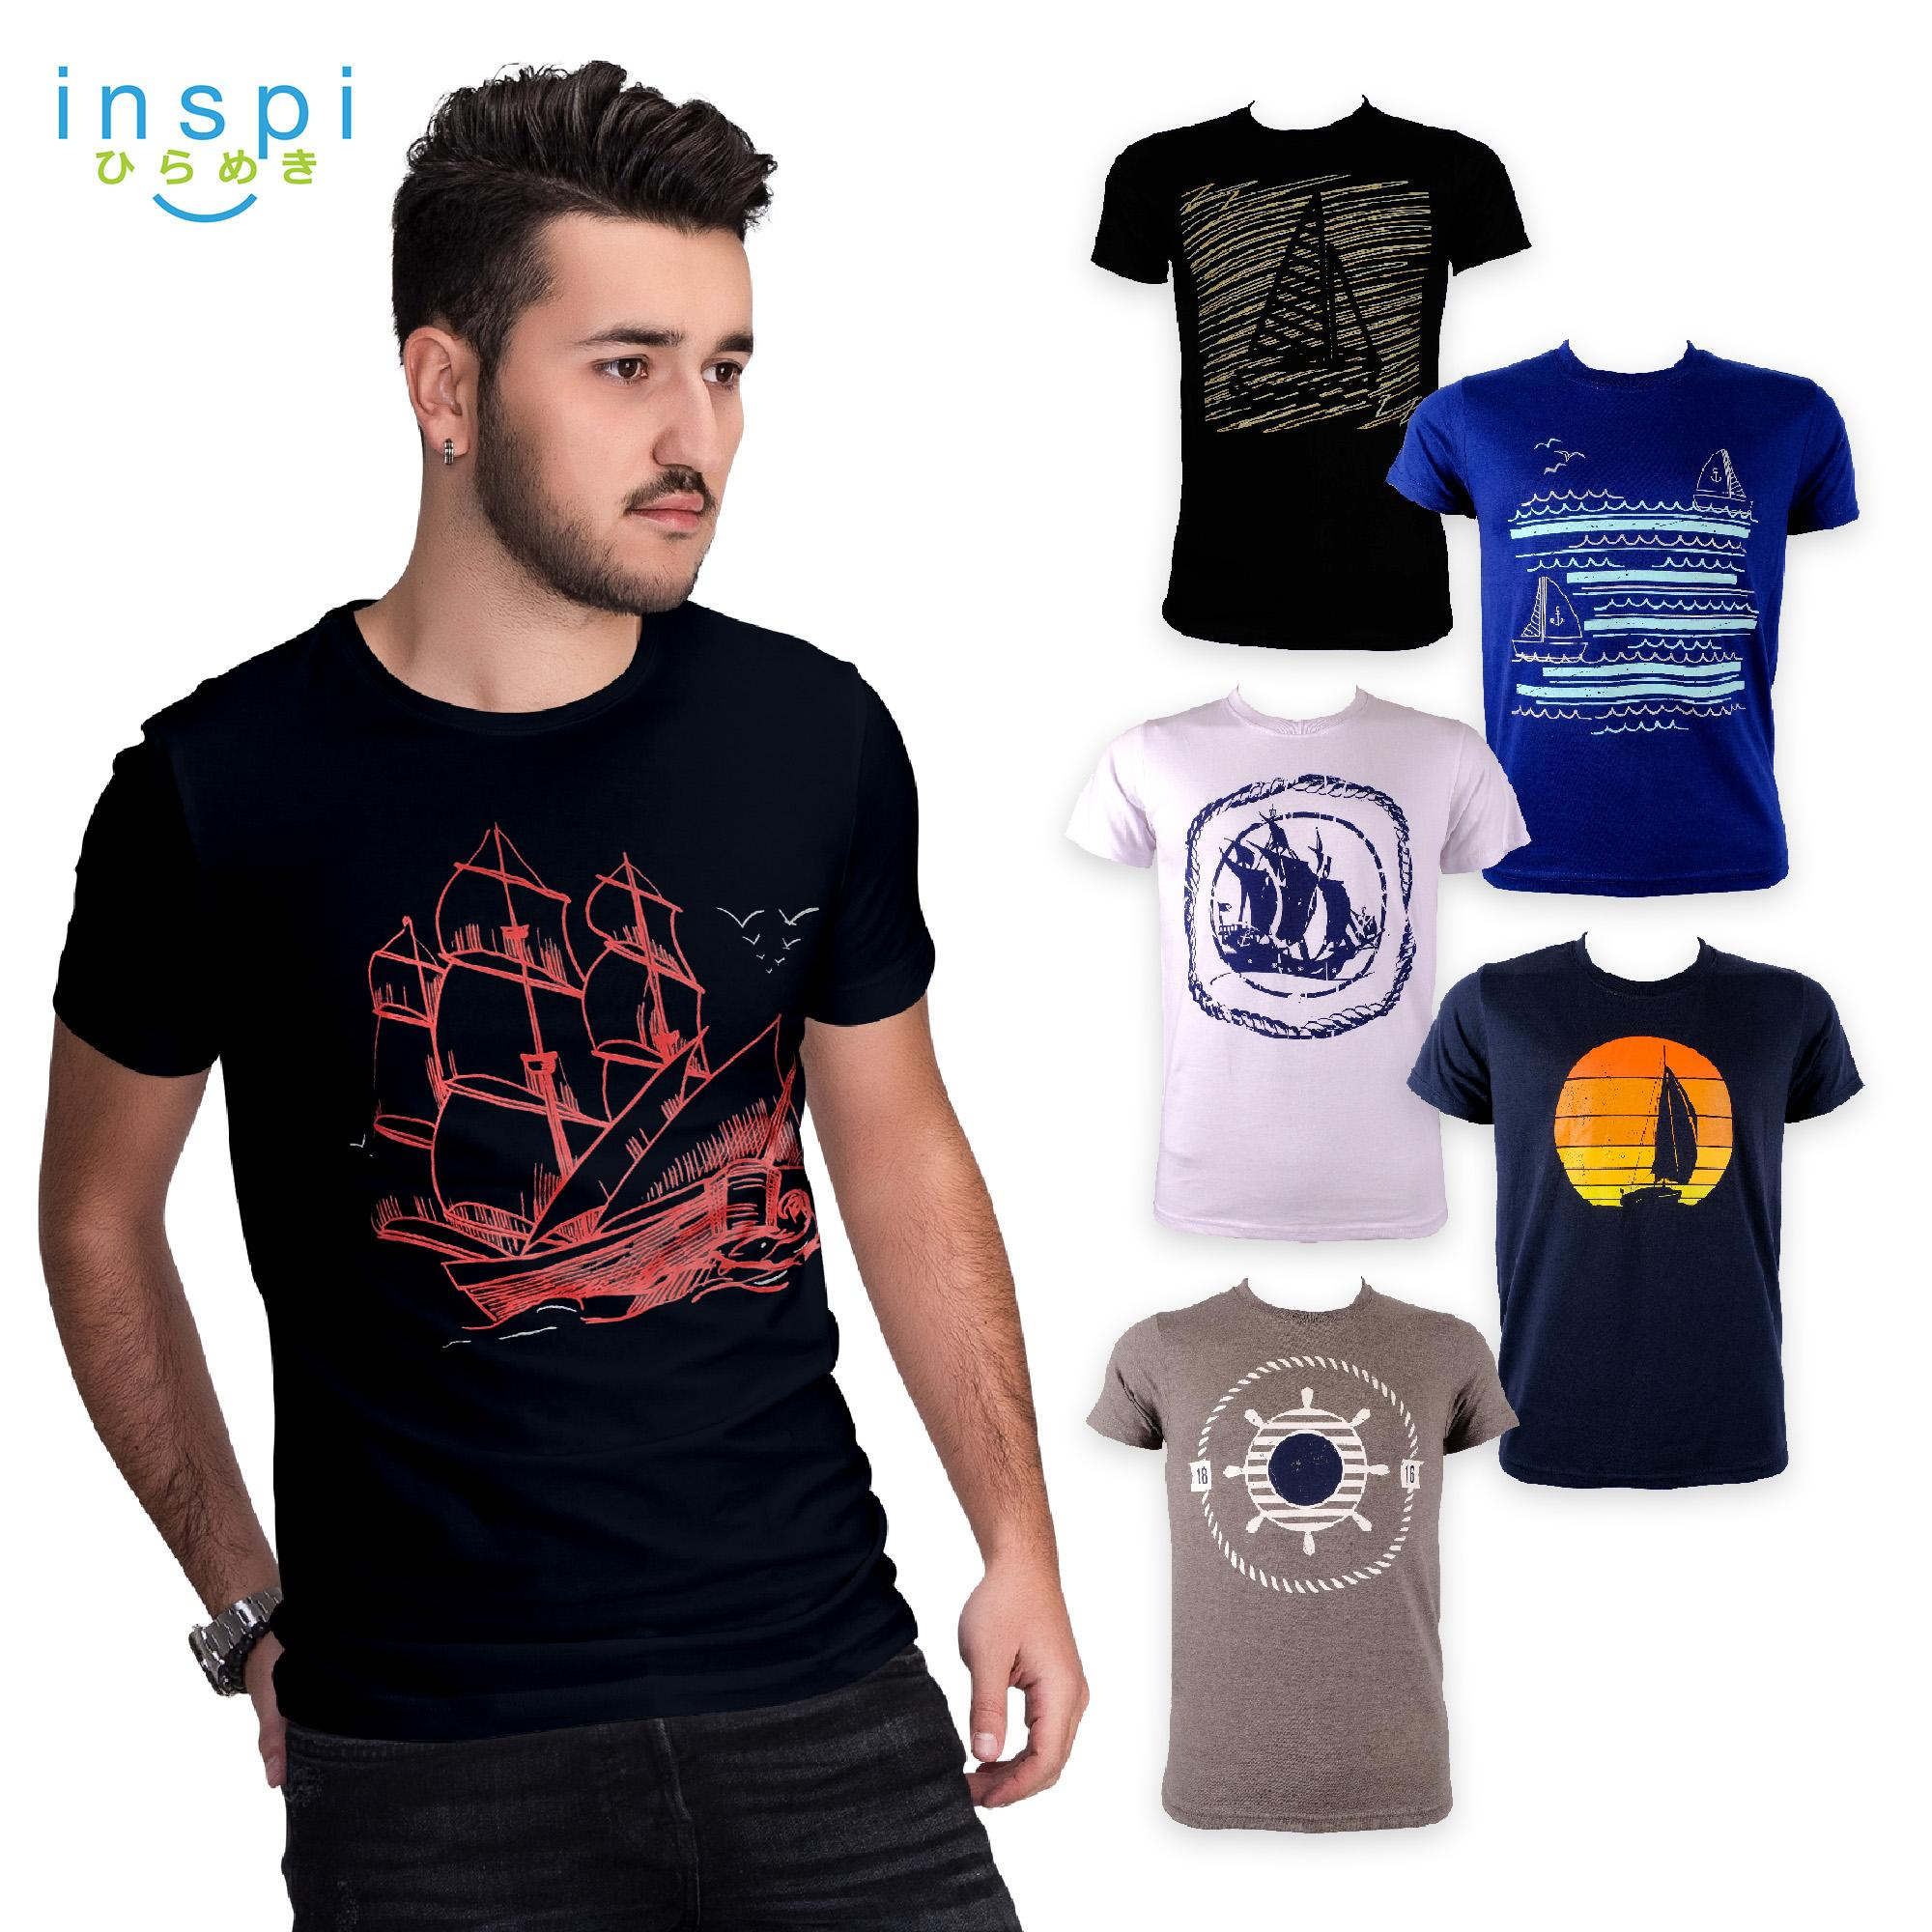 b91b1a5874df INSPI Tees Sailing Collection tshirt printed graphic tee Mens t shirt shirts  for men tshirts sale